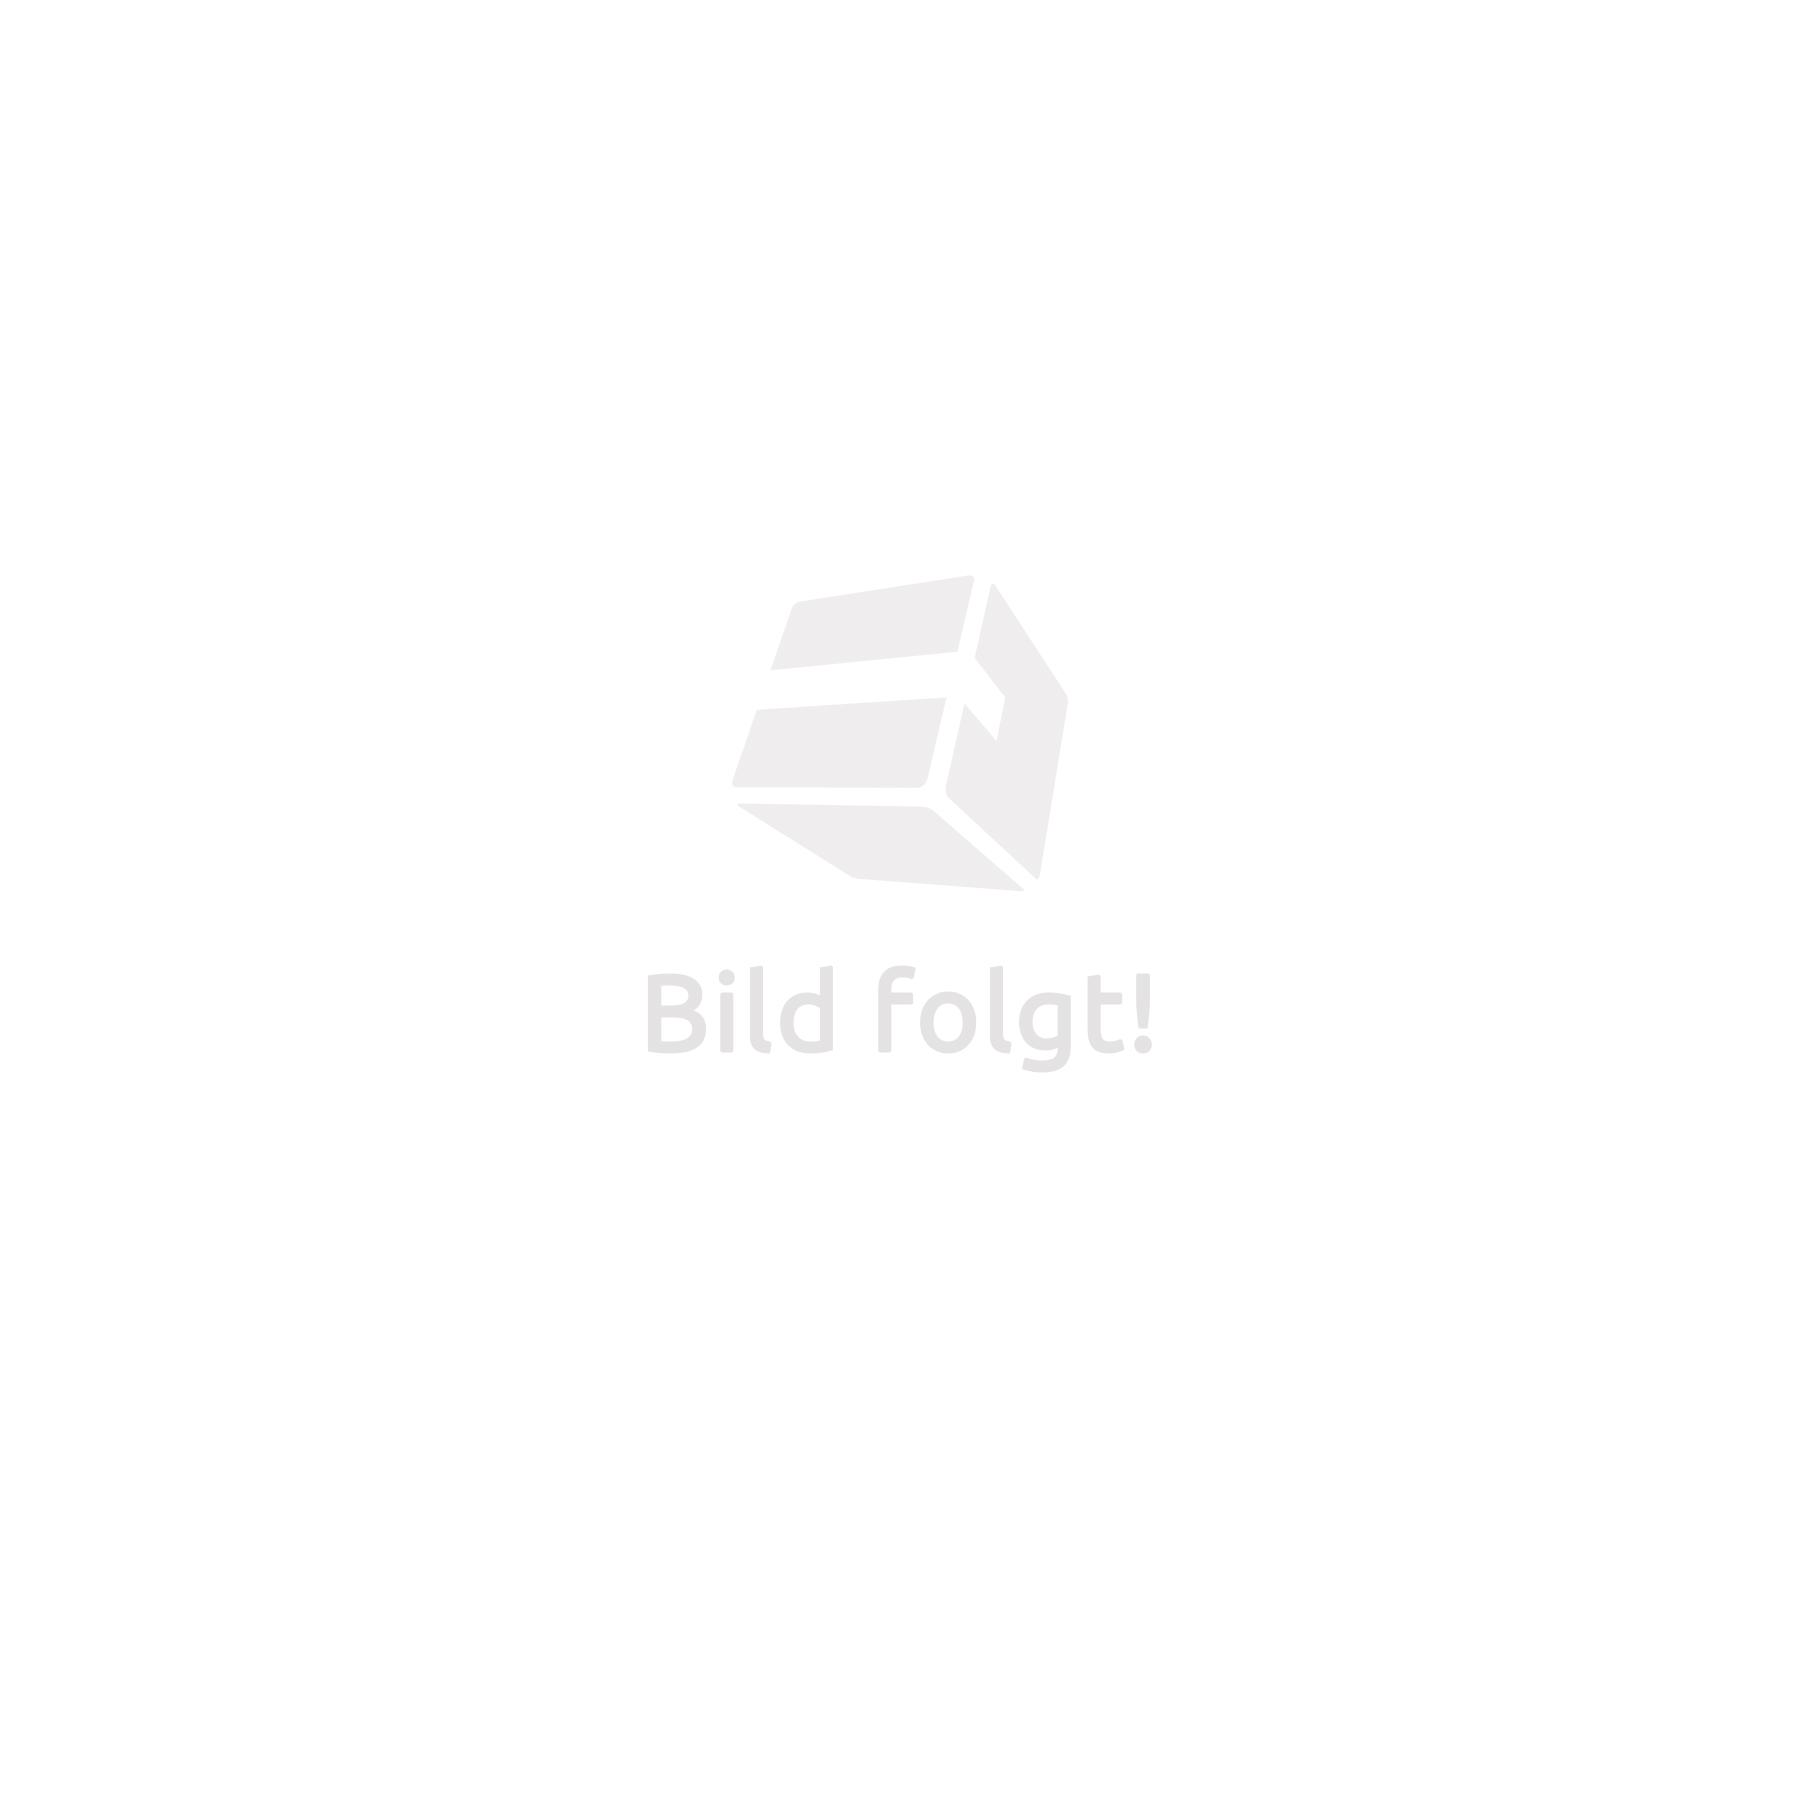 luxus gartenpavillon gartenzelt festzelt pavillon partyzelt 390x290x265 cm ebay. Black Bedroom Furniture Sets. Home Design Ideas